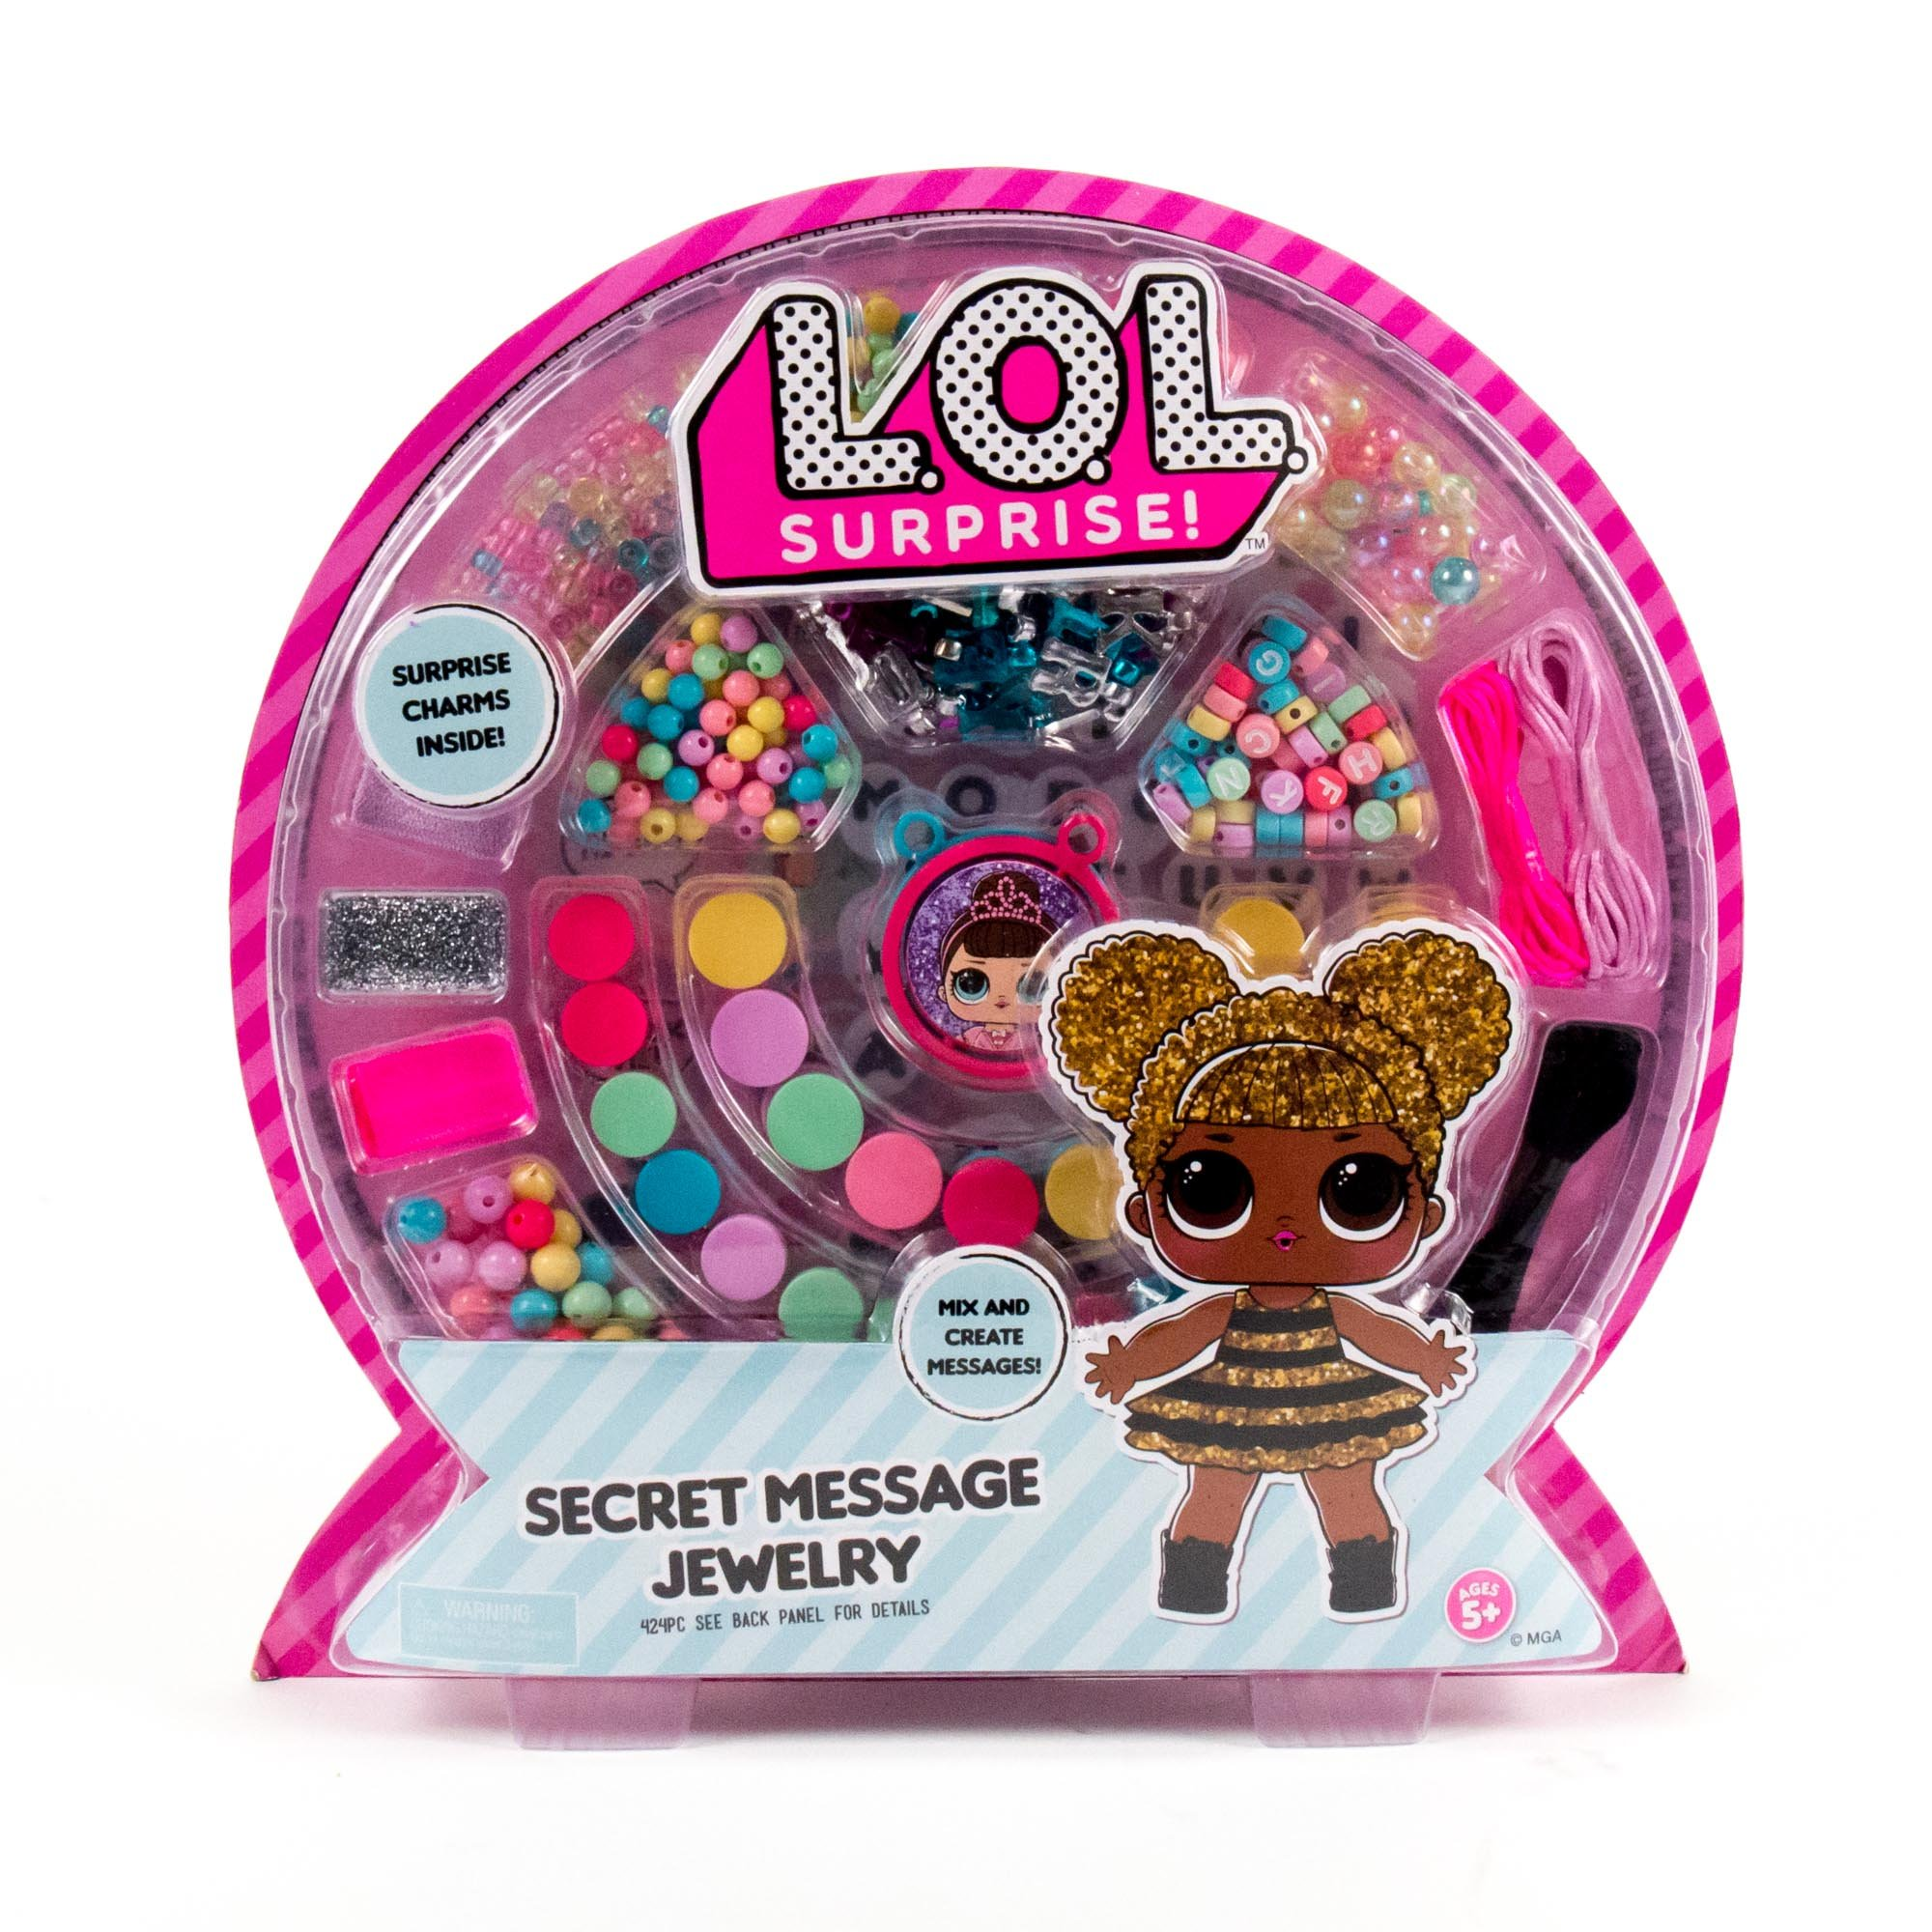 L.O.L. Surprise! Secret Message Jewelry by Horizon Group Usa, DIY Secret Jewelry Making Kit, Over 400 Beads & Charms Included, Multicolored by L.O.L. Surprise!